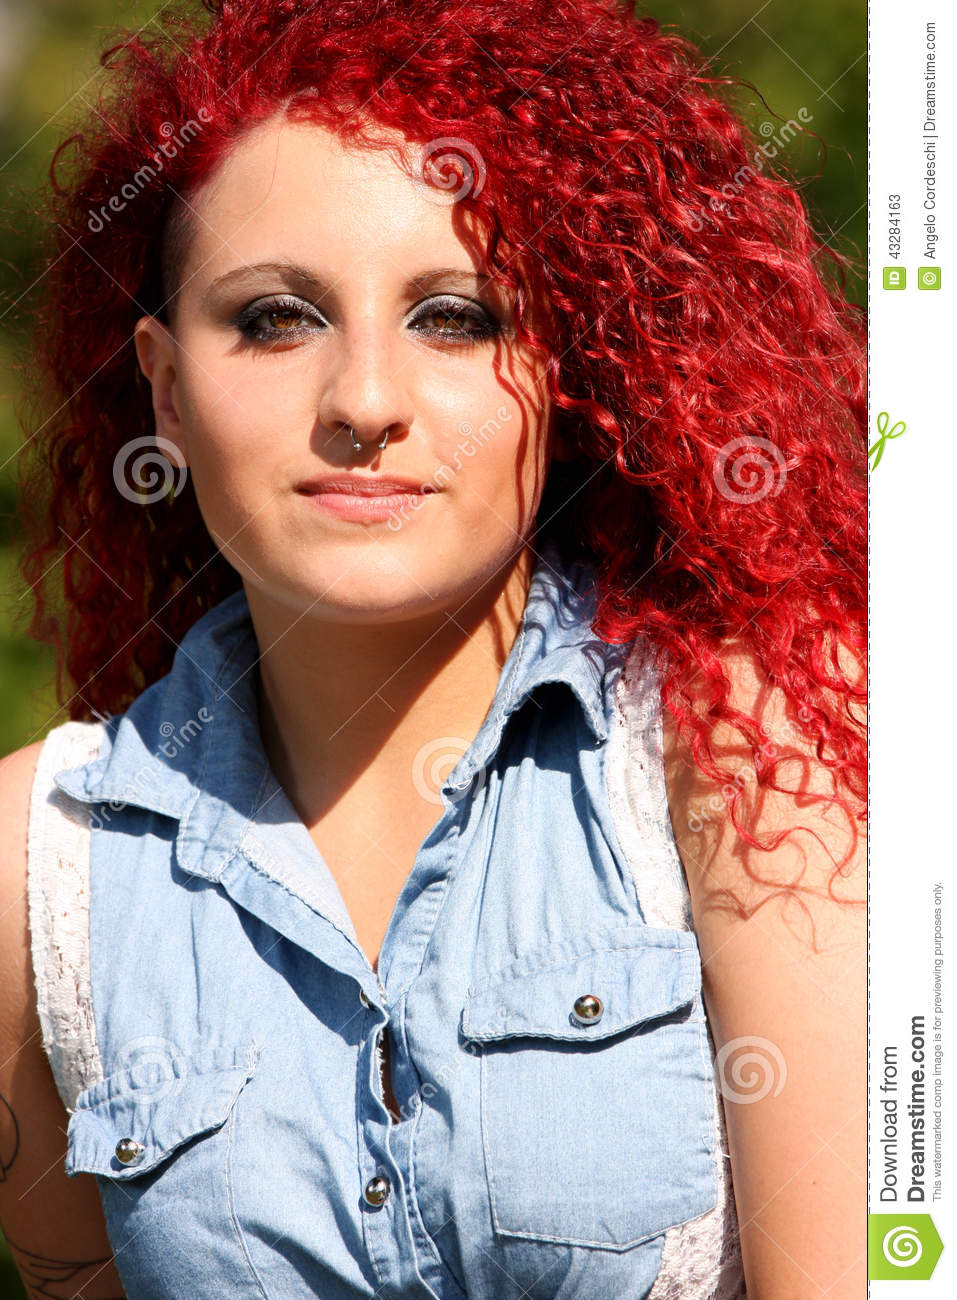 Hair Styled Girl Fashion Outdoor Stock Image Image 43284163